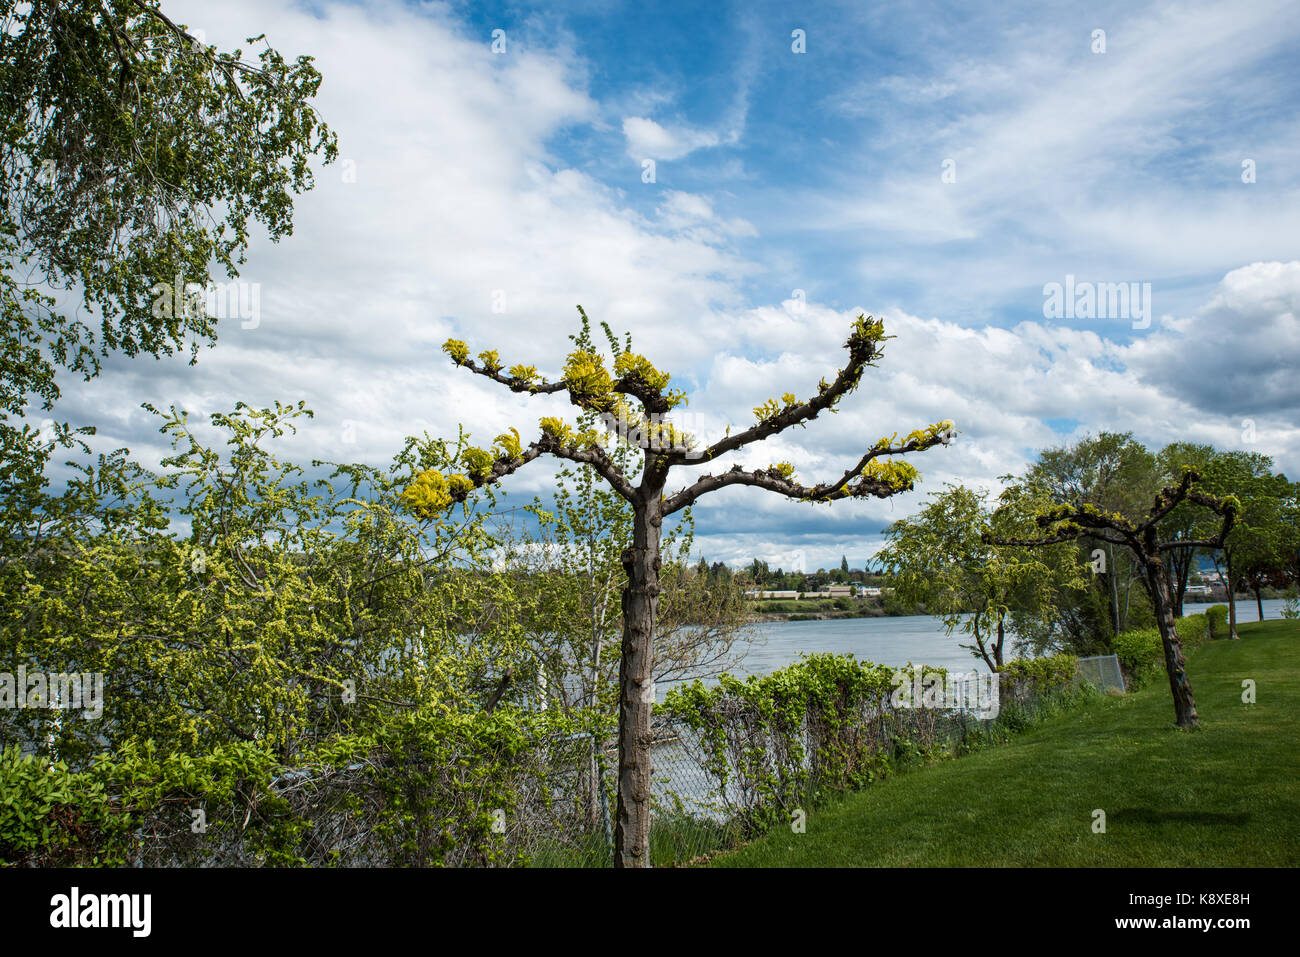 Come Hither - An unearthly tree beckons the weary traveler on the Apple Capital Loop Trail as the Columbia River - Stock Image